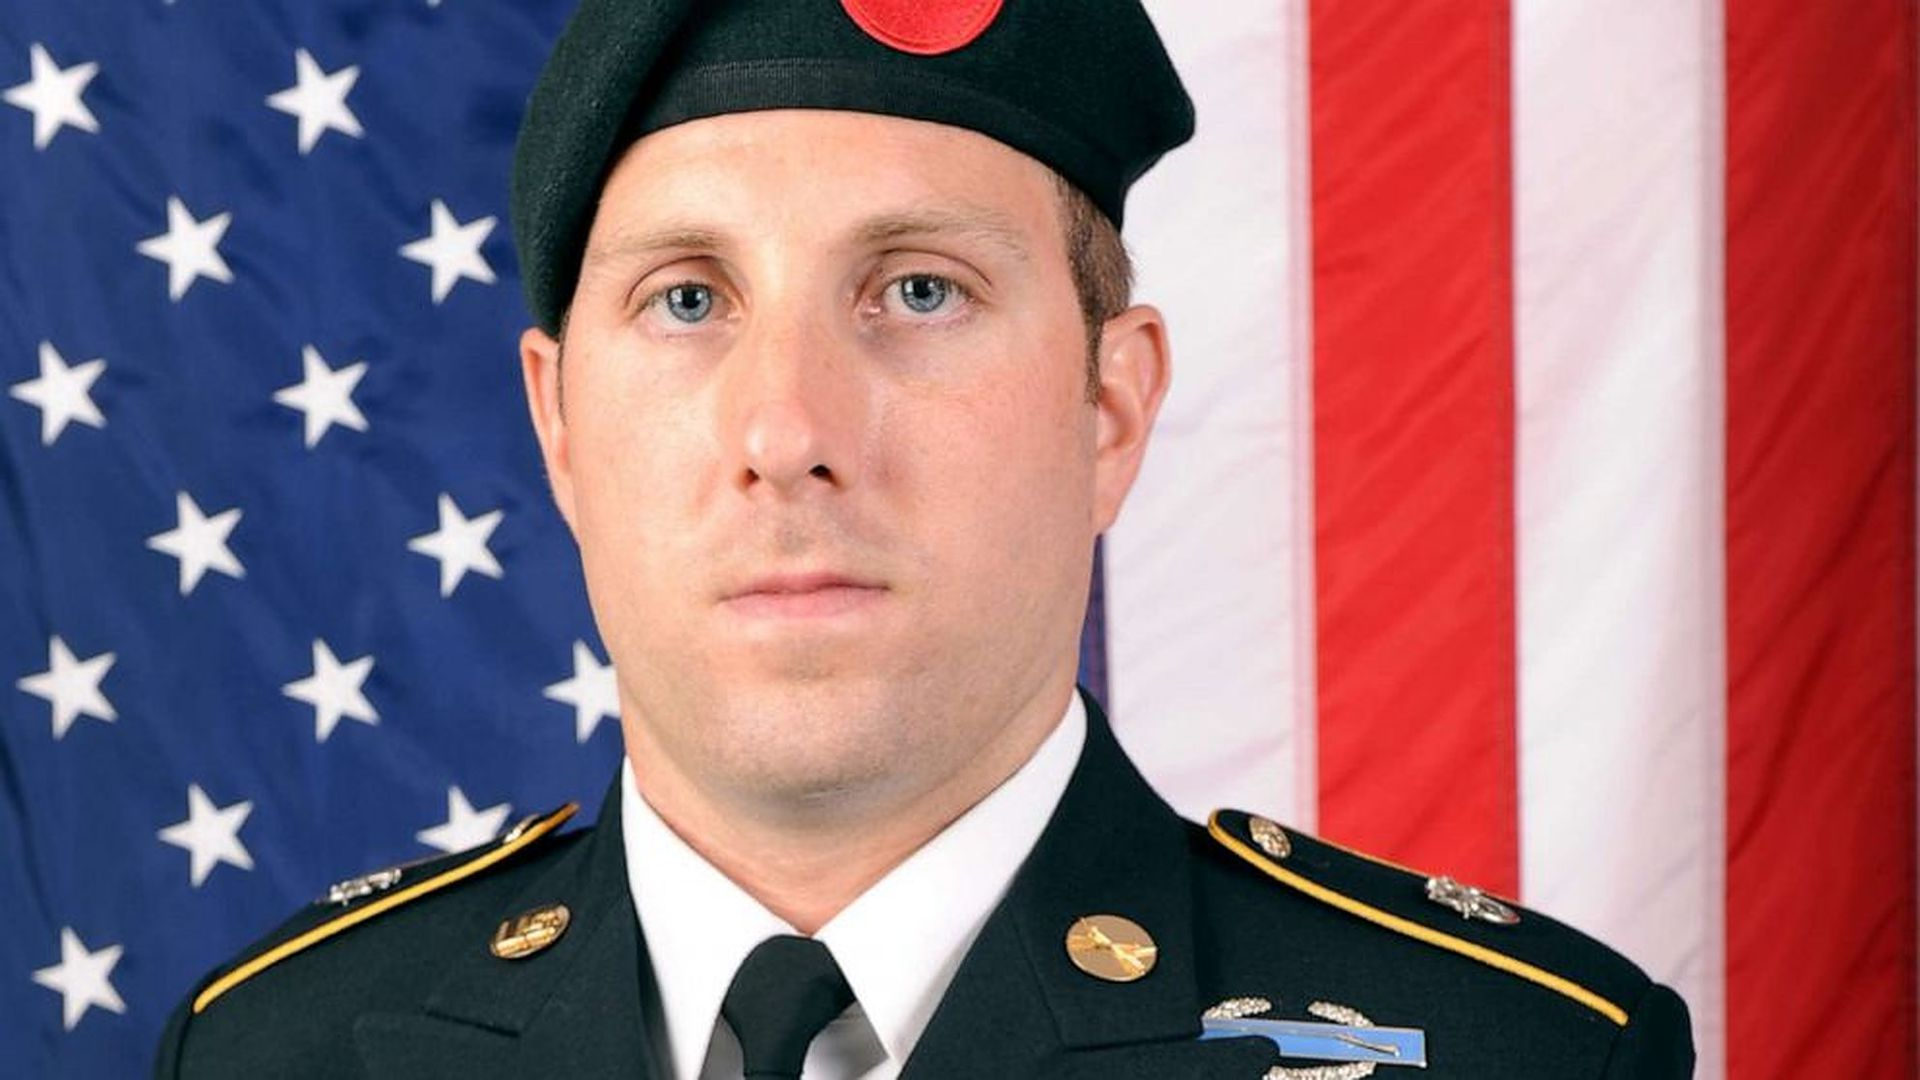 Sgt. 1st Class Michael James Goble, 33, a U.S. Special Forces Soldier, died in Afghanistan, December 23rd